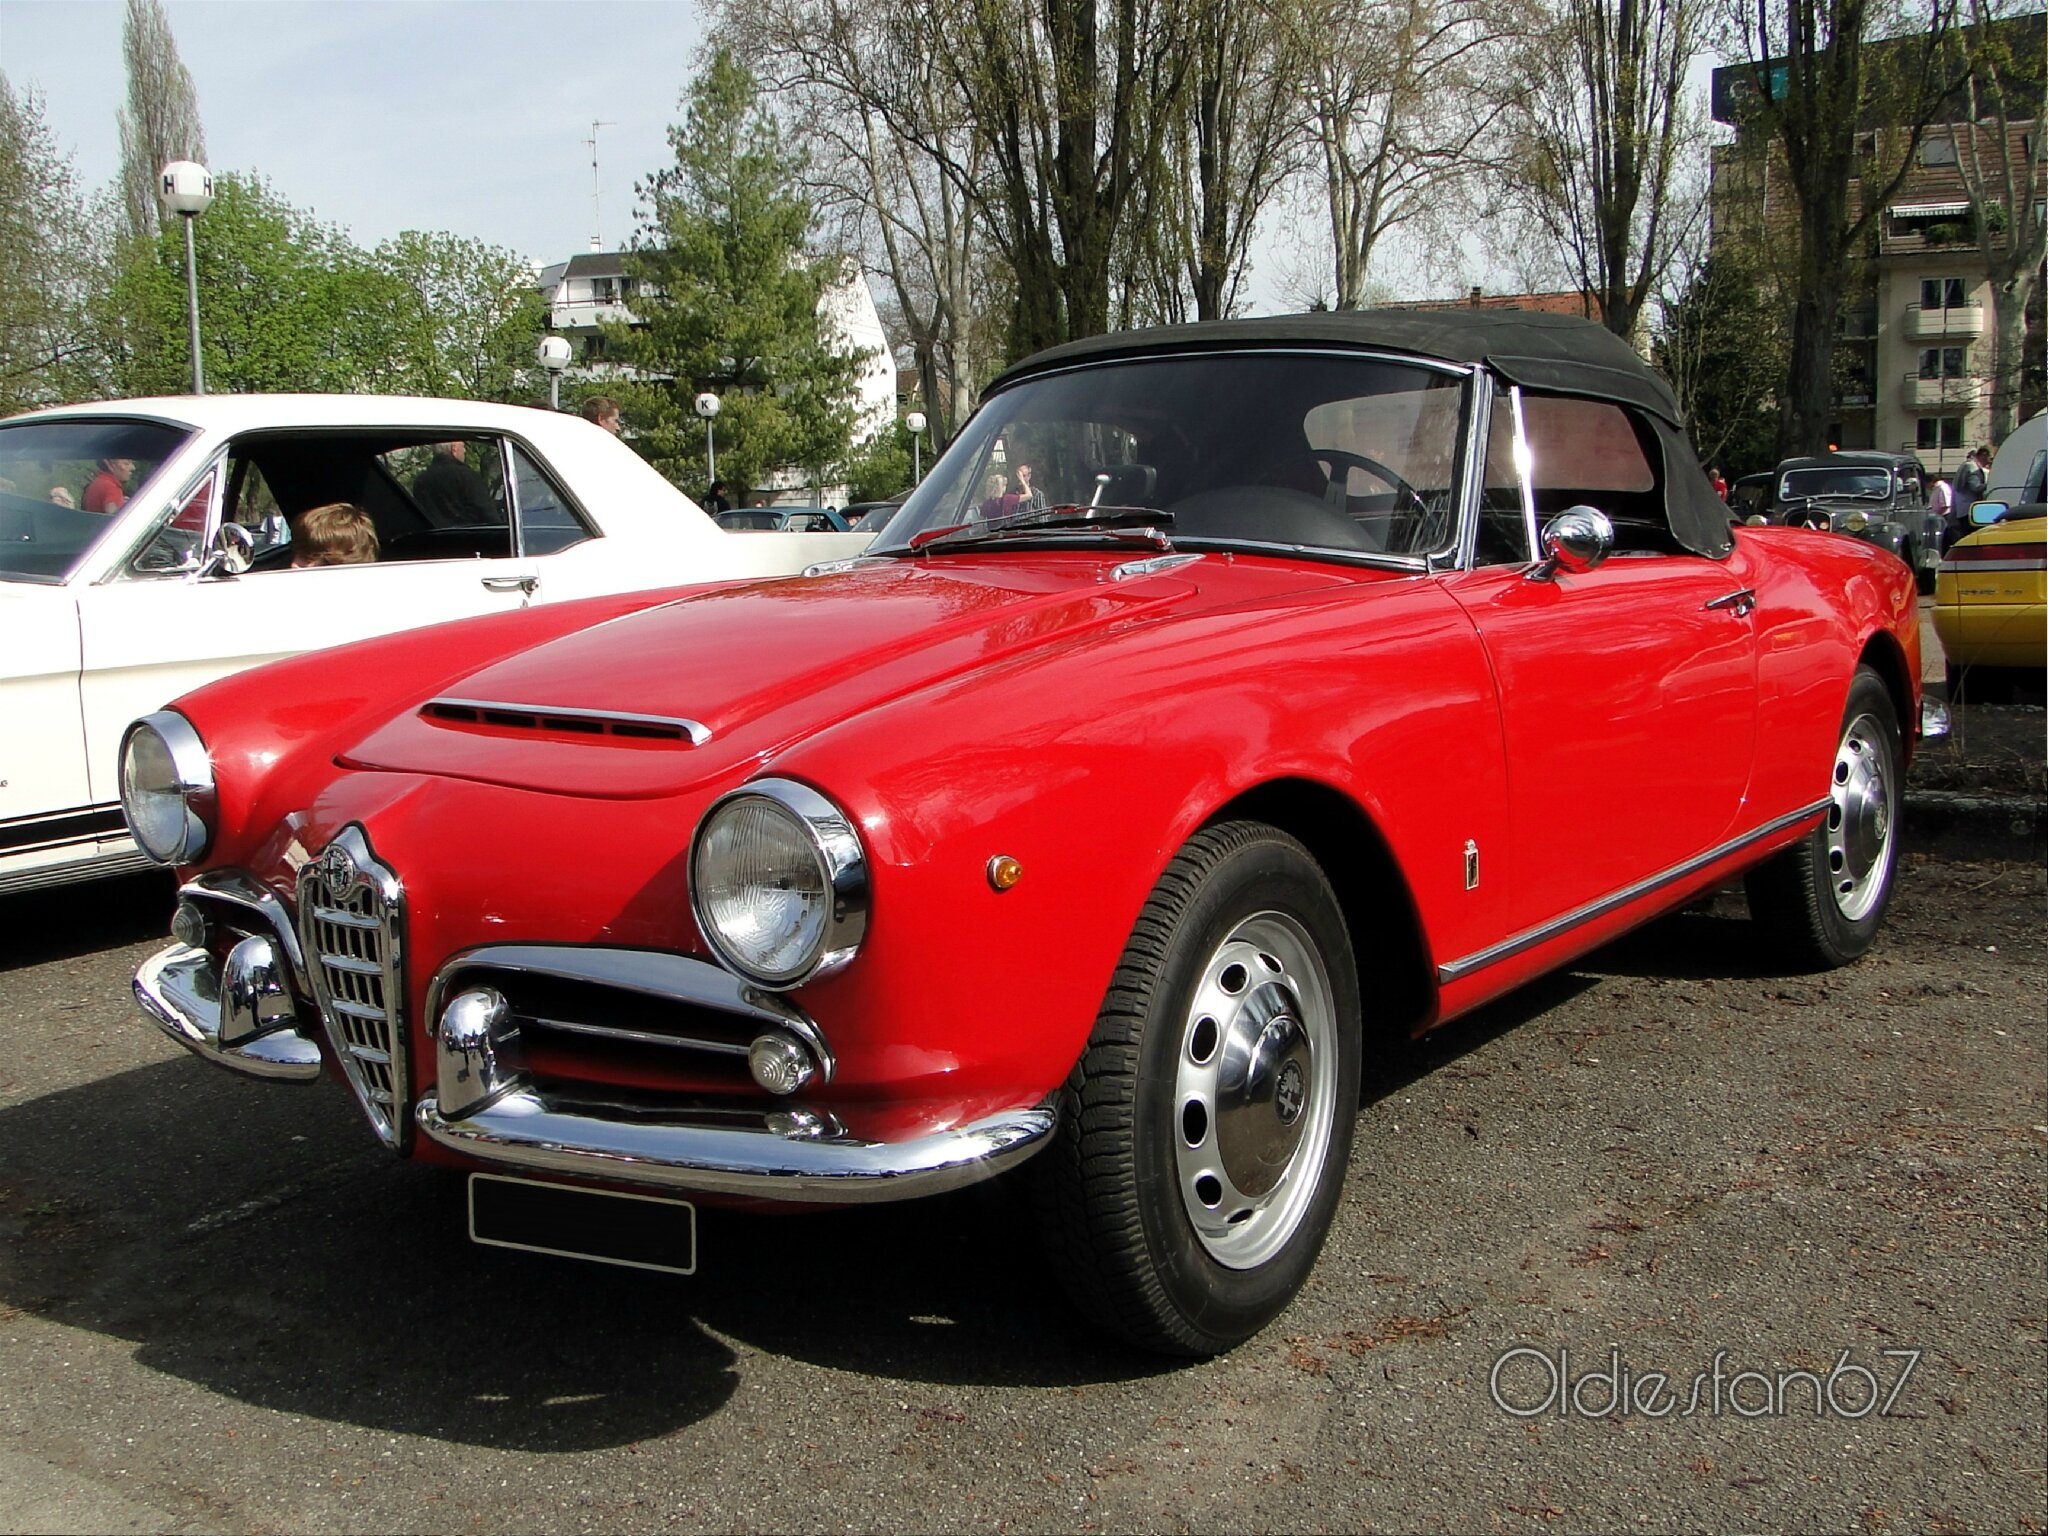 alfa romeo giulietta spider 1955 oldiesfan67 mon blog auto. Black Bedroom Furniture Sets. Home Design Ideas